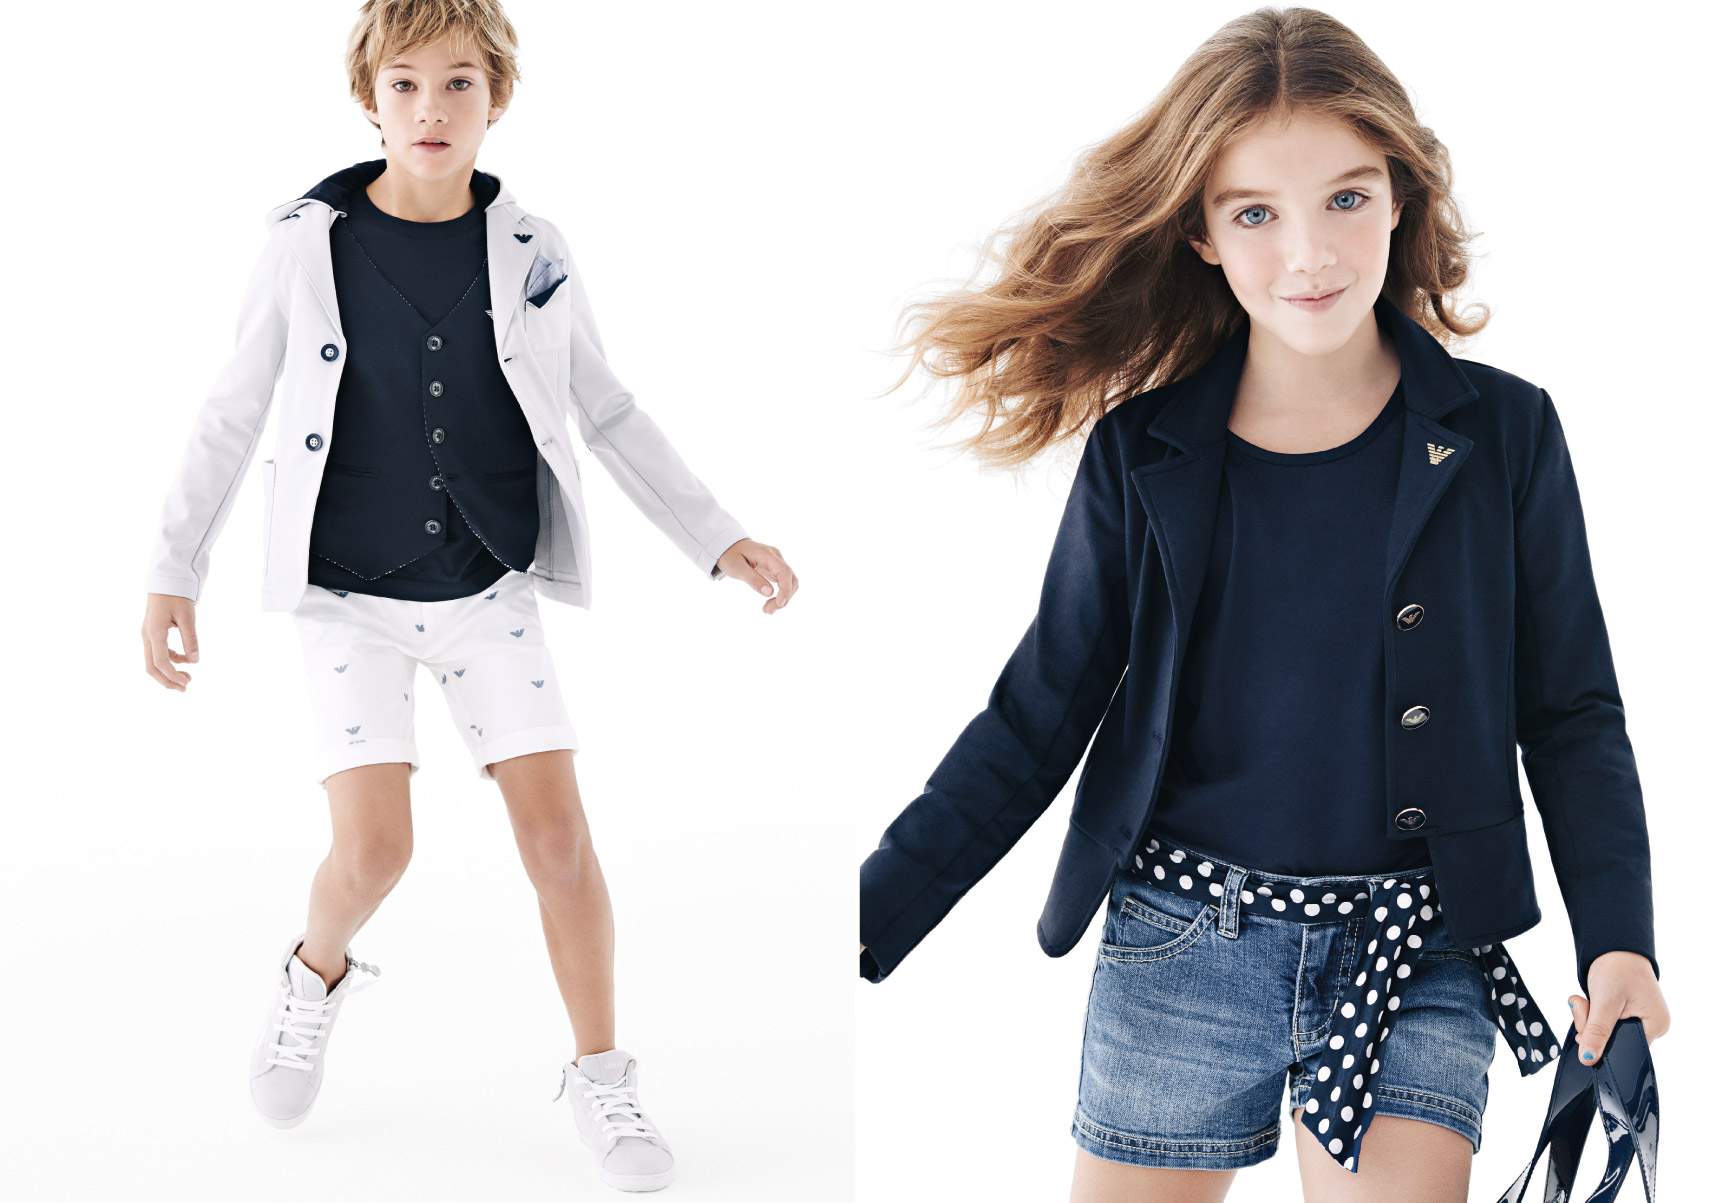 Armani Junior Spring Summer 2014, solid blue looks for boy and girl